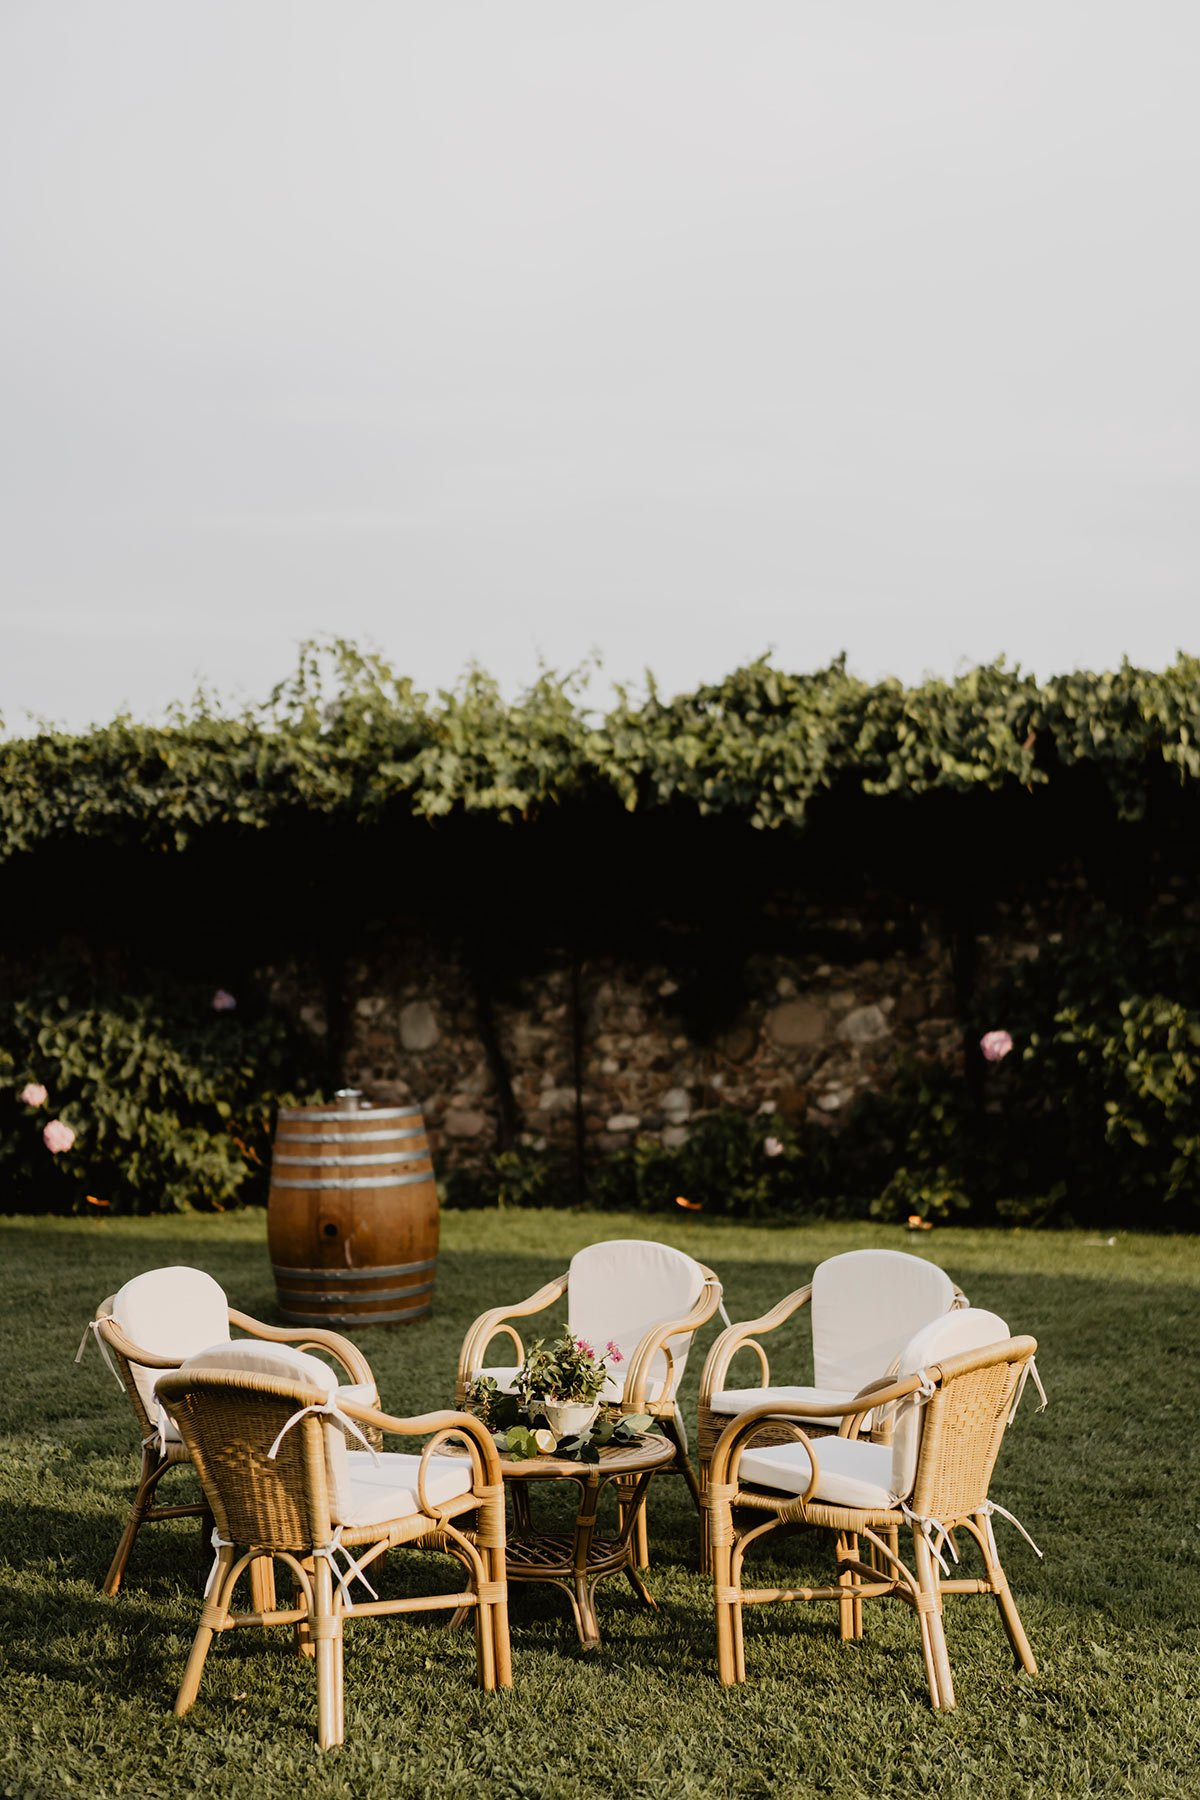 Ranya and Tarek, rehearsal dinner in Italy, styling